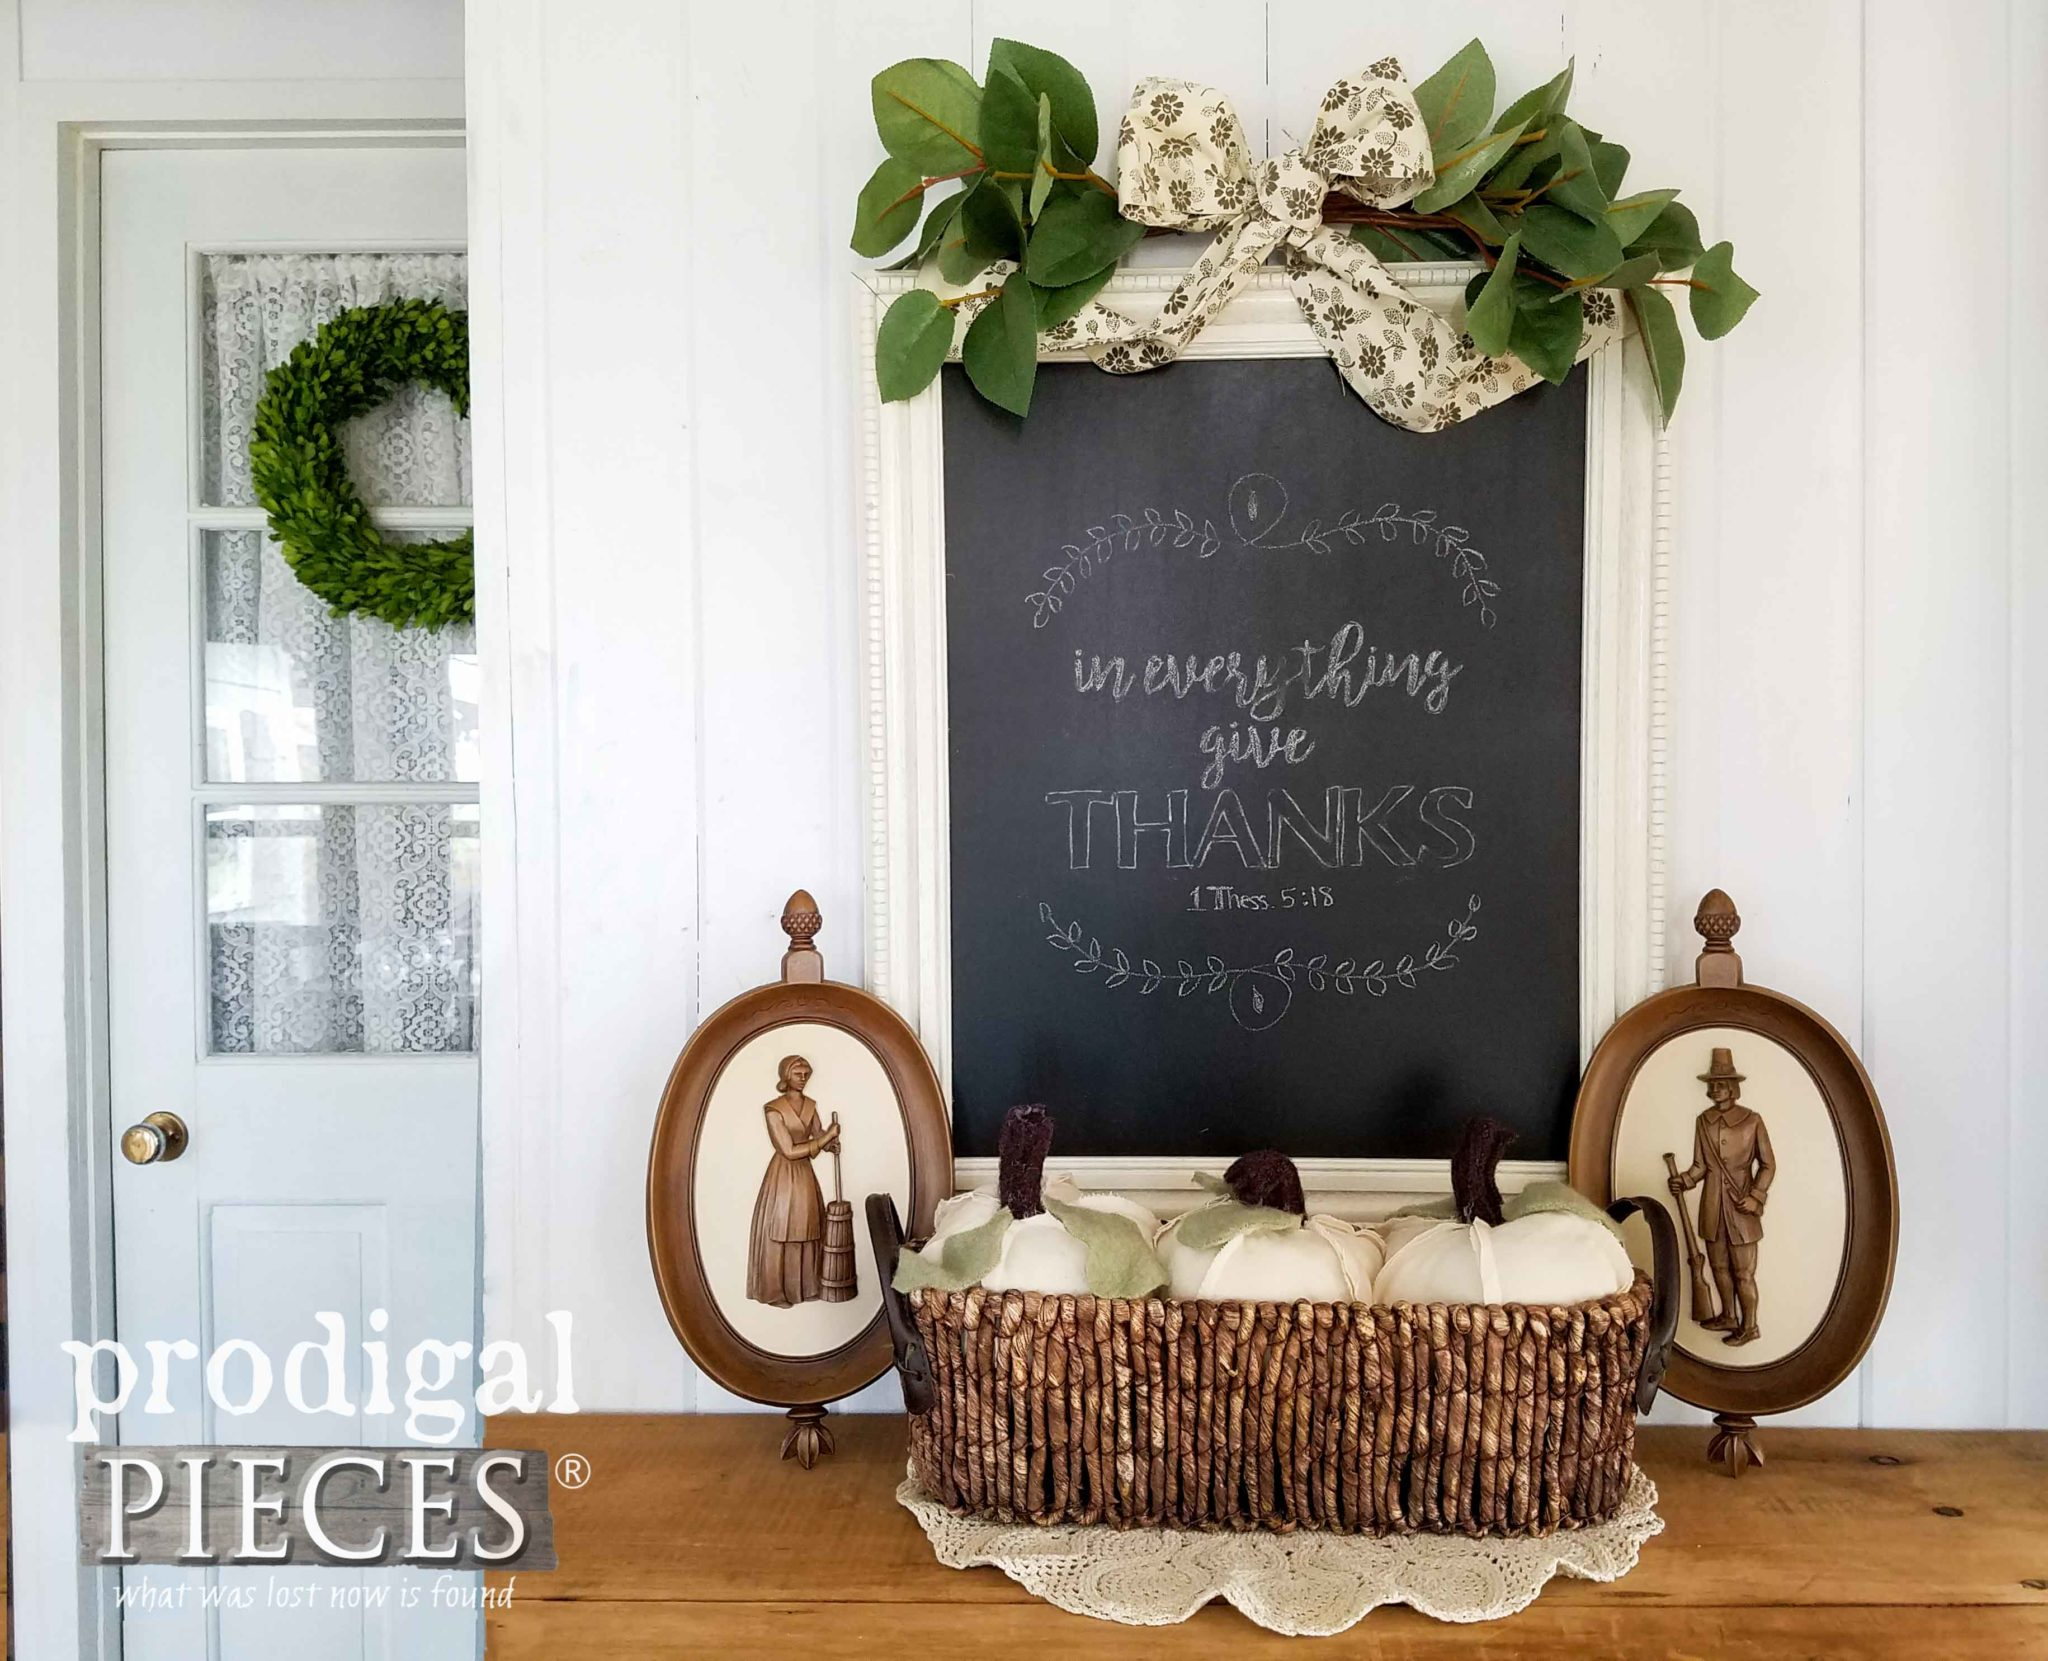 DIY Last-minute Thanksgiving Day Vignette by Larissa of Prodigal Pieces | prodigalpieces.com